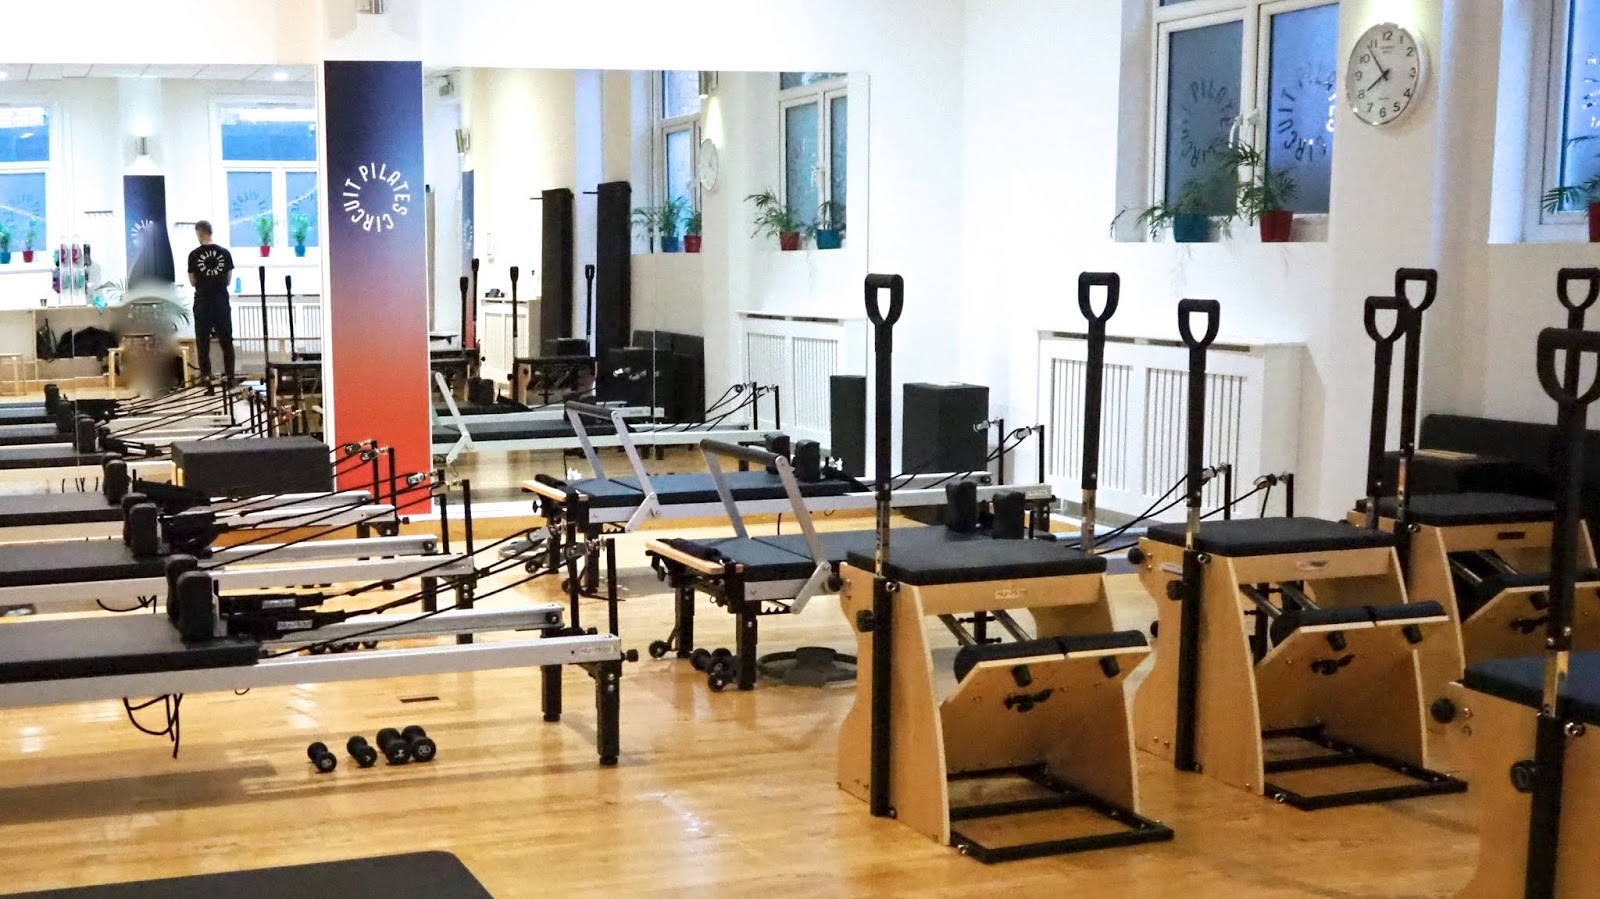 Pilates reformers and Pilates chairs at Pilates Circuit Wandsworth